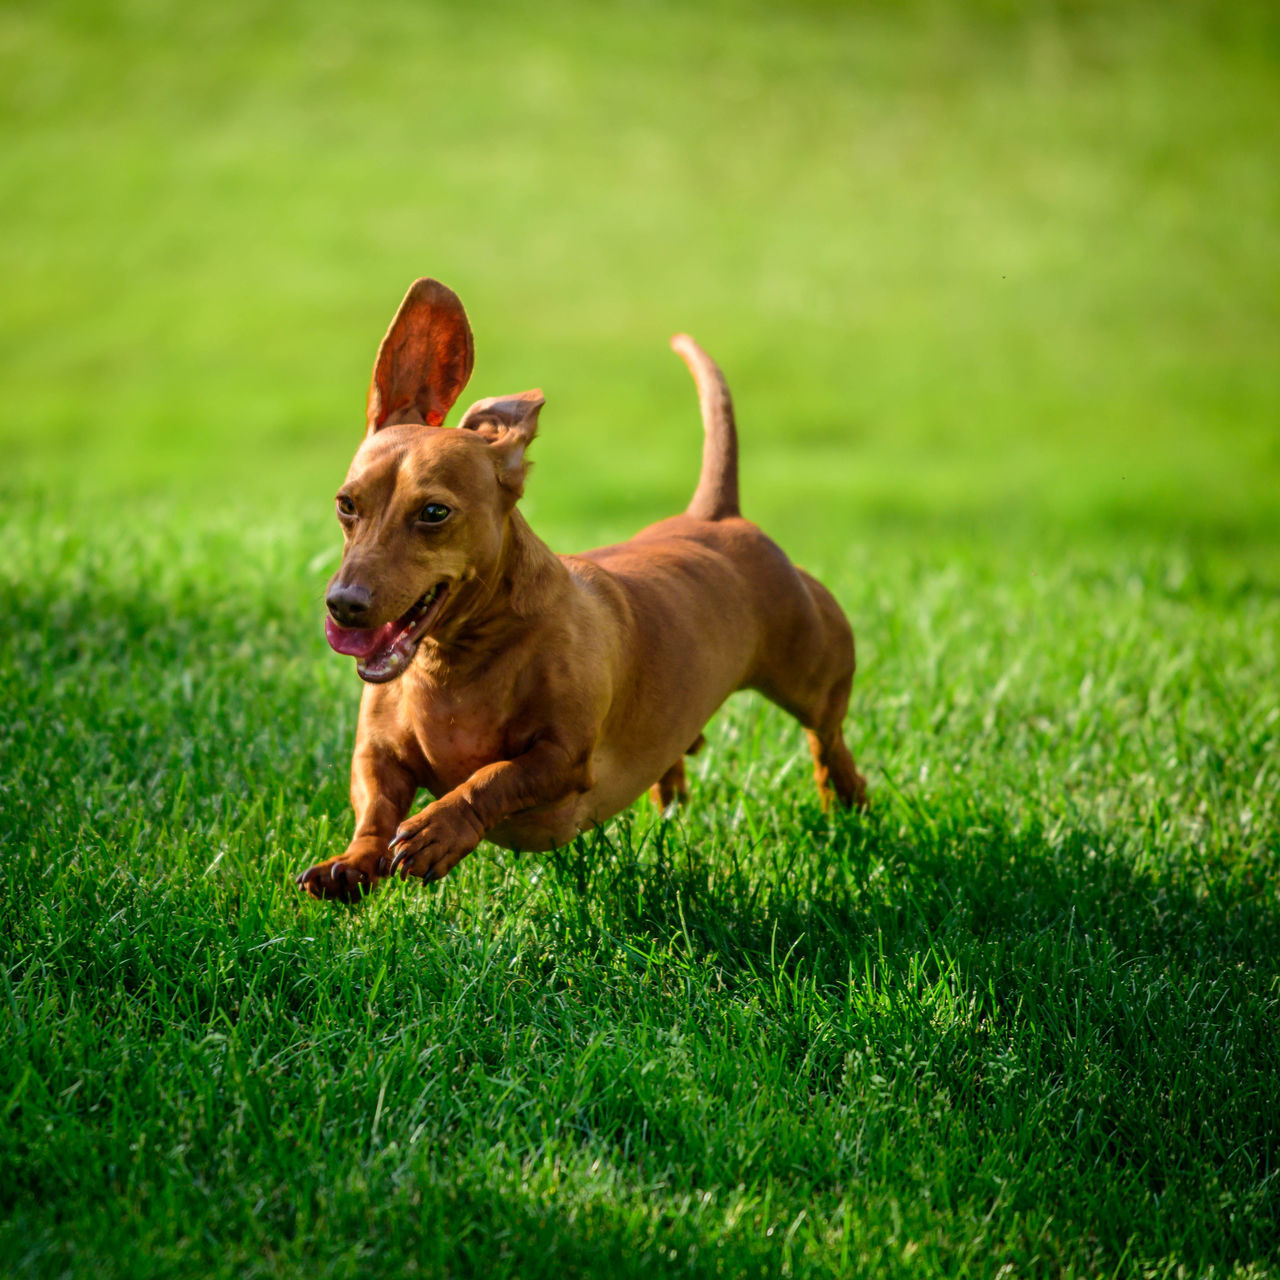 Animal Themes Dachshund Day Dog Domestic Animals Field Grass Green Color HotDog Mammal Nature No People One Animal Outdoors Pets Running Dog Running Dogs Smooth Sticking Out Tongue Weenie Dog Wiener Dog